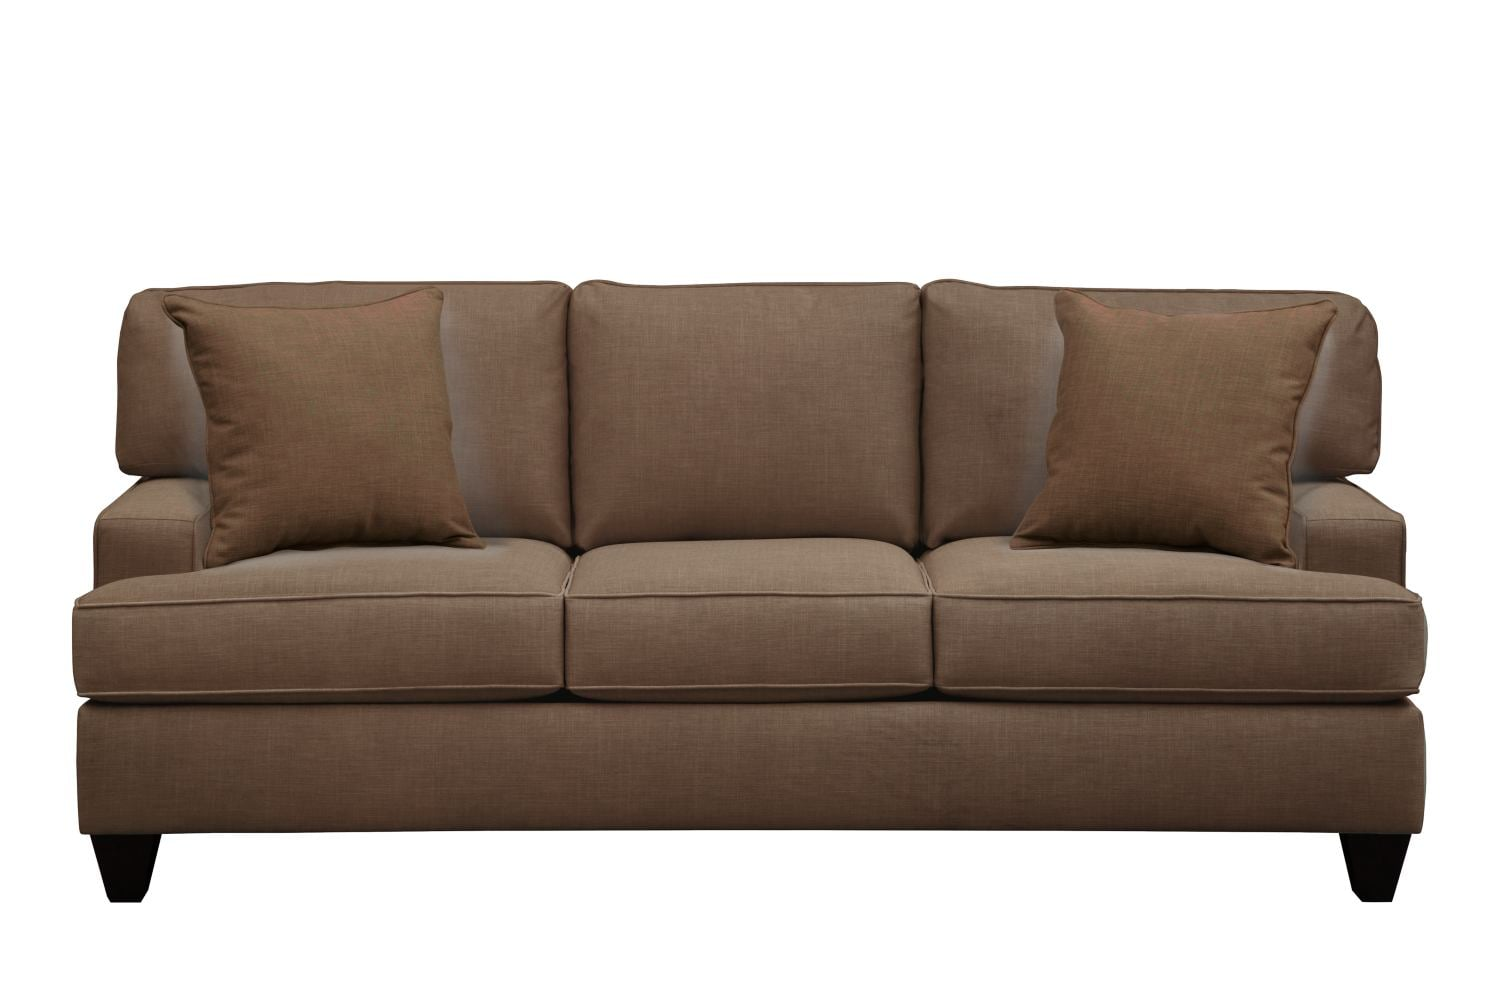 "Living Room Furniture - Conner Track Arm Sofa 87"" Oakley III Java w/ Oakley III Java Pillow"